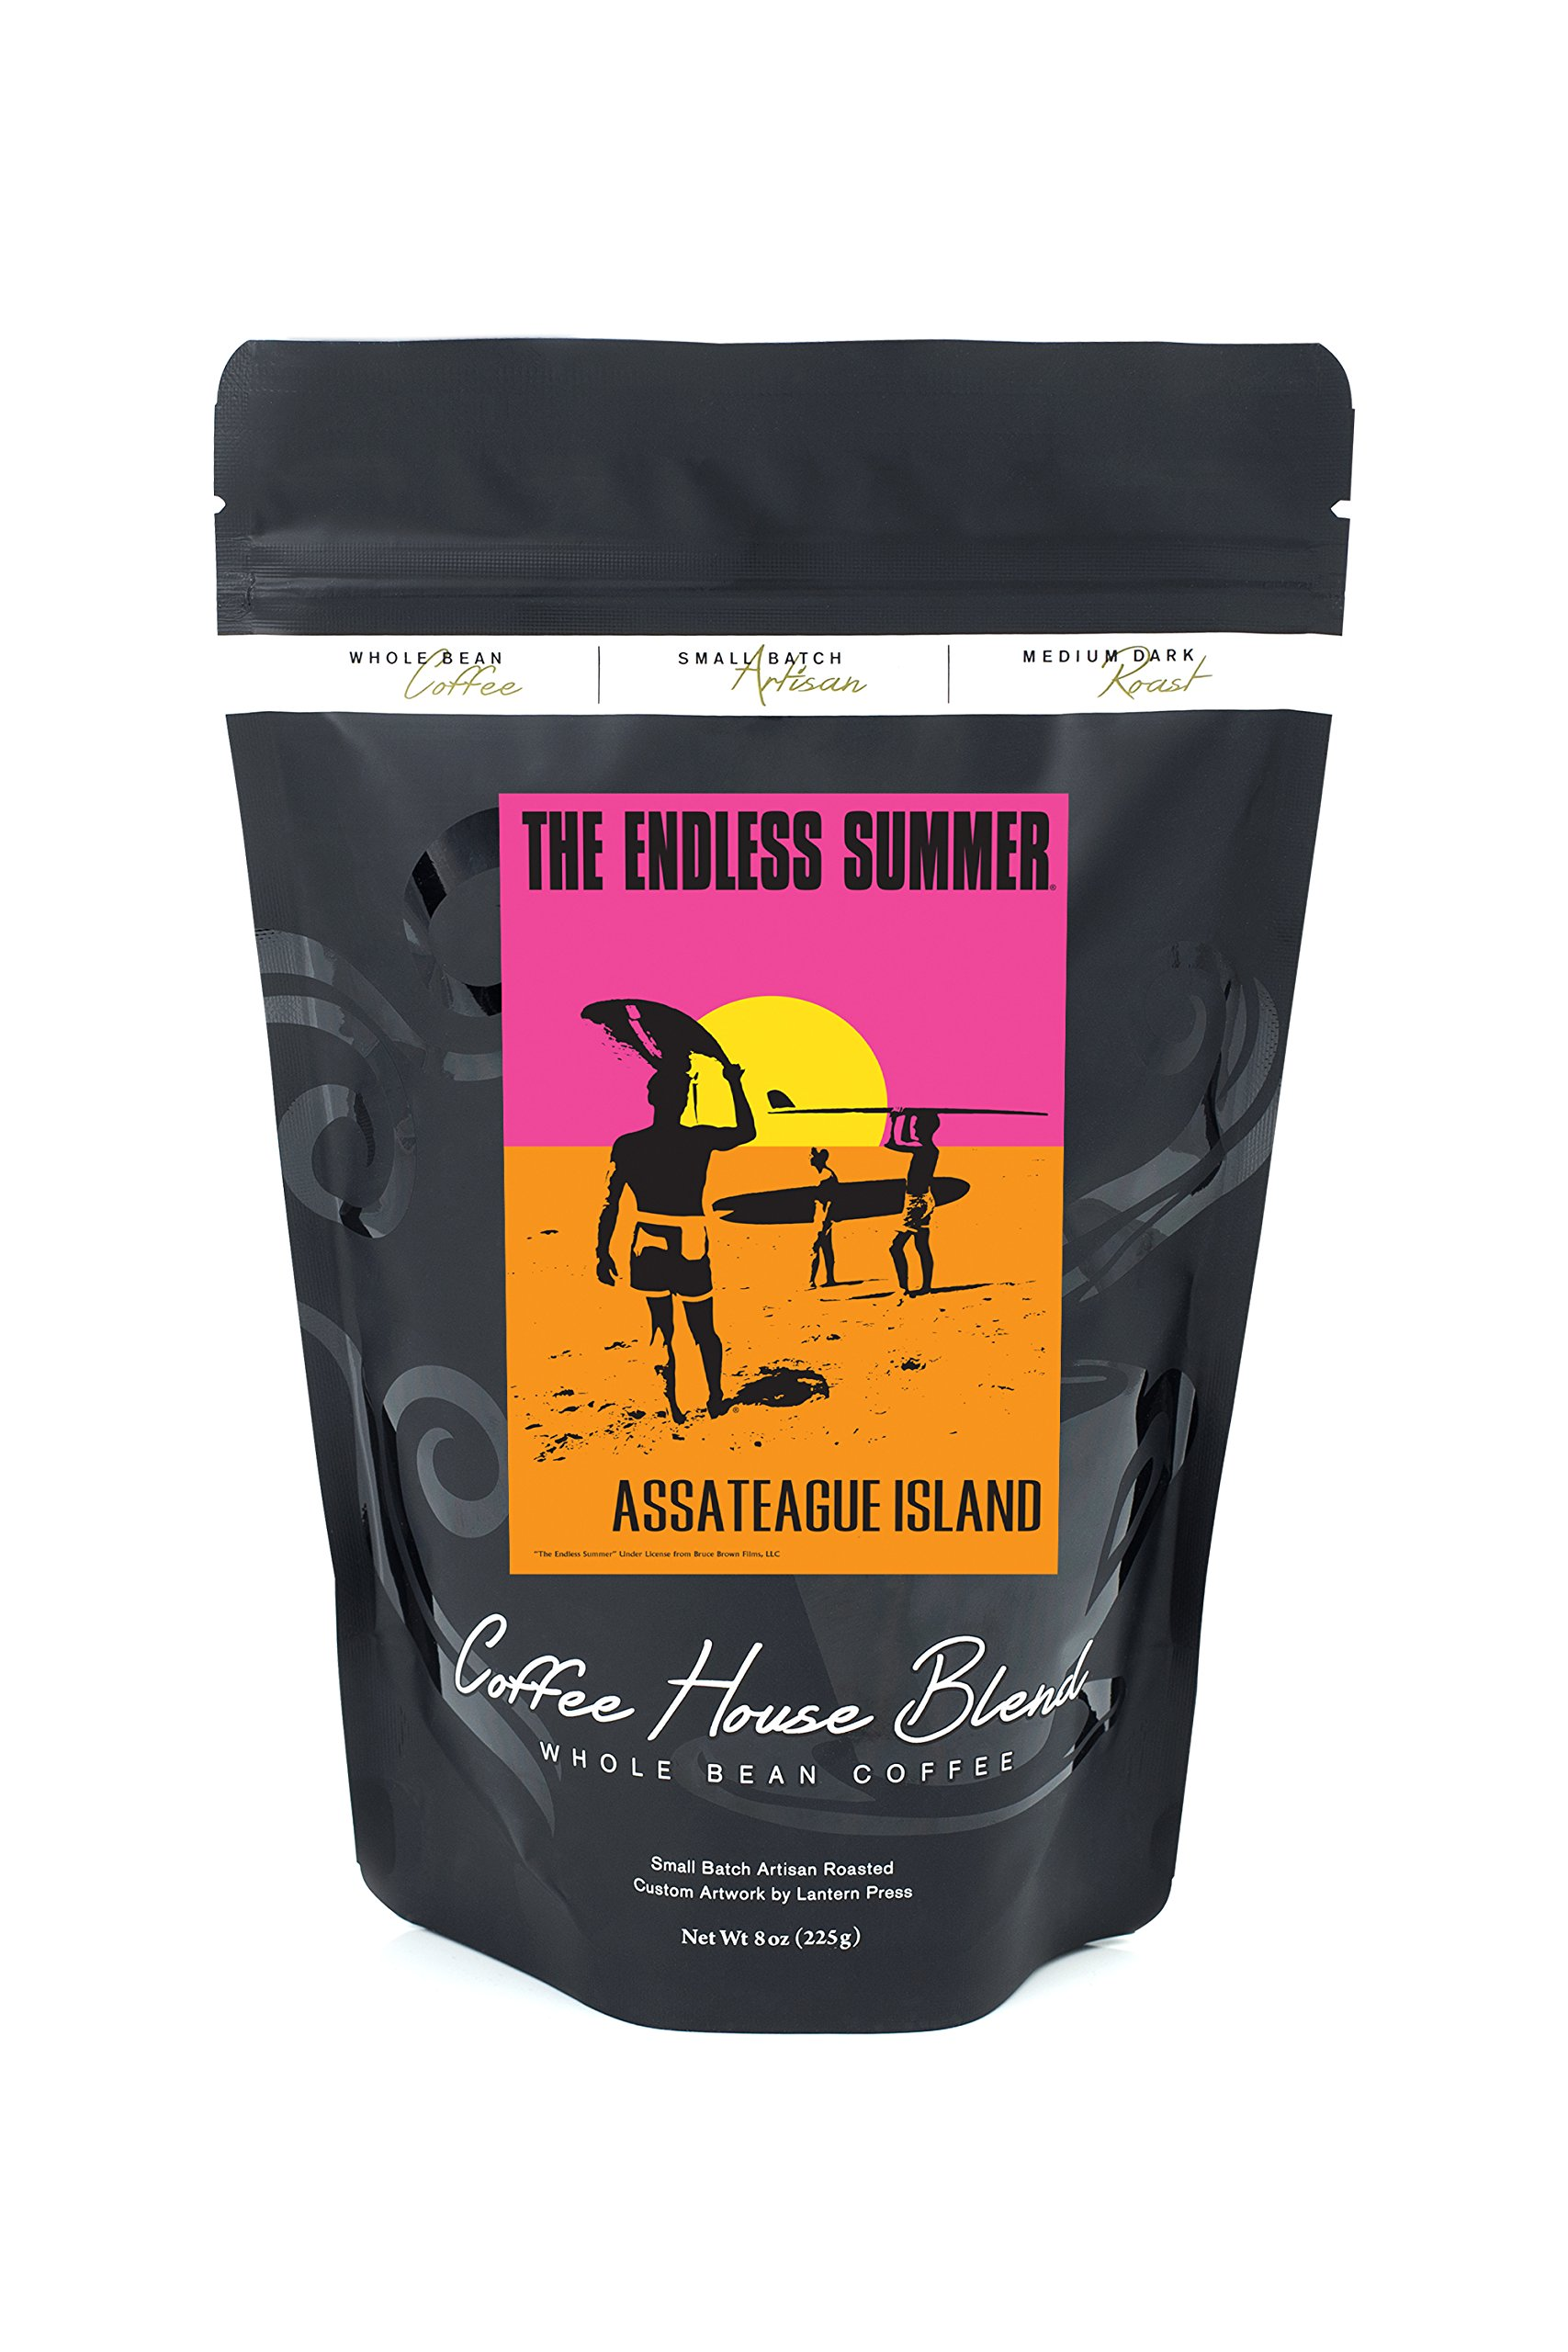 Assateague Island - The Endless Summer - Original Movie Poster (8oz Whole Bean Small Batch Artisan Coffee - Bold & Strong Medium Dark Roast w/ Artwork)